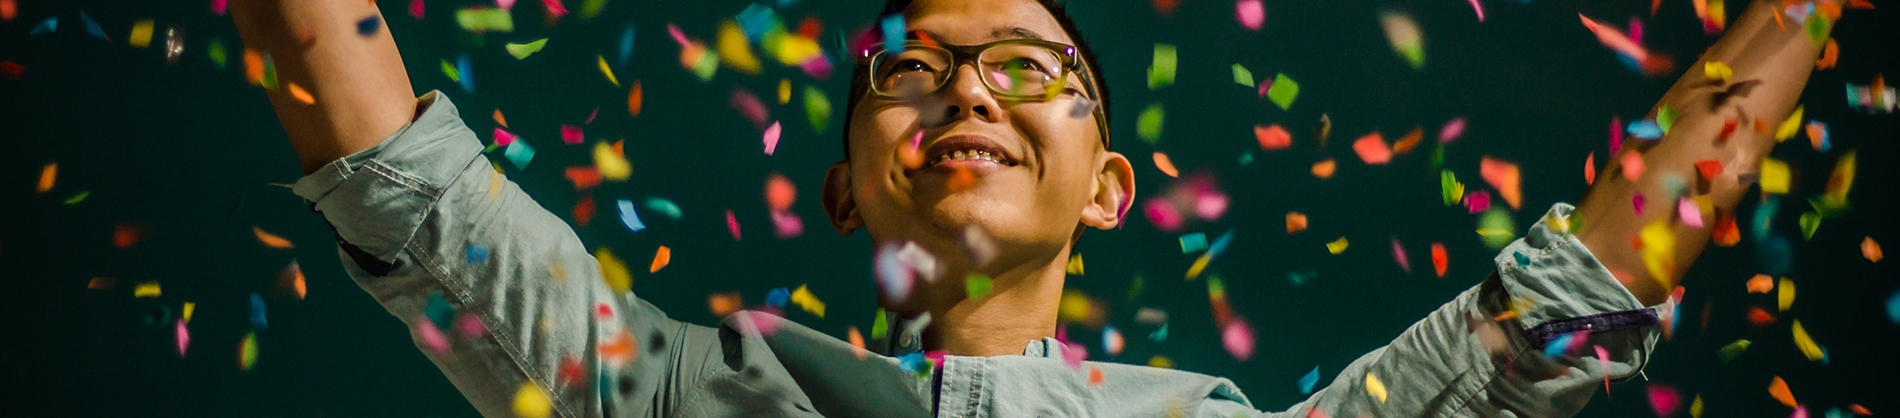 A guy smiling with his arms in the air and confetti falling around him